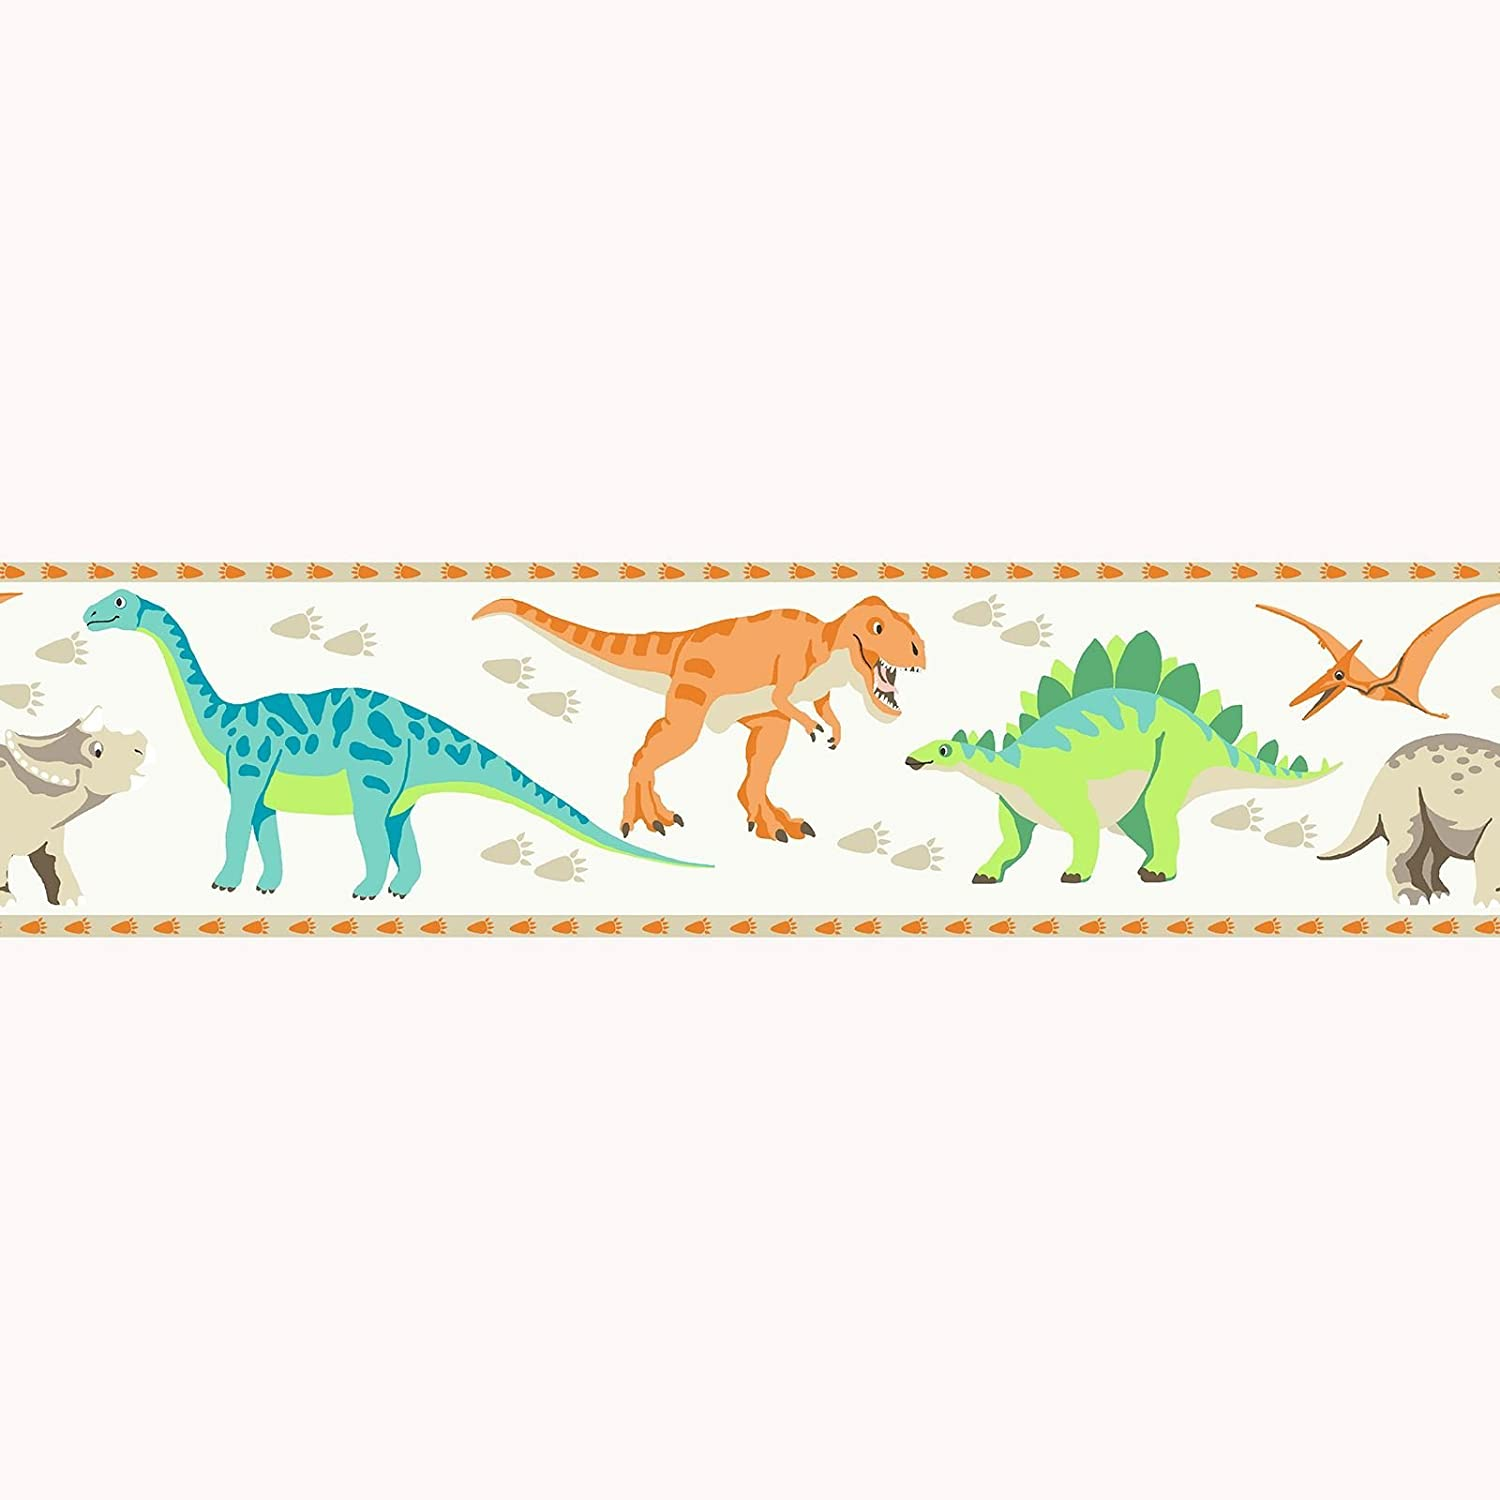 Dinosaur World Wallpaper Border - A13101 - Price Right Home Exclusive Design Direct Wallpapers